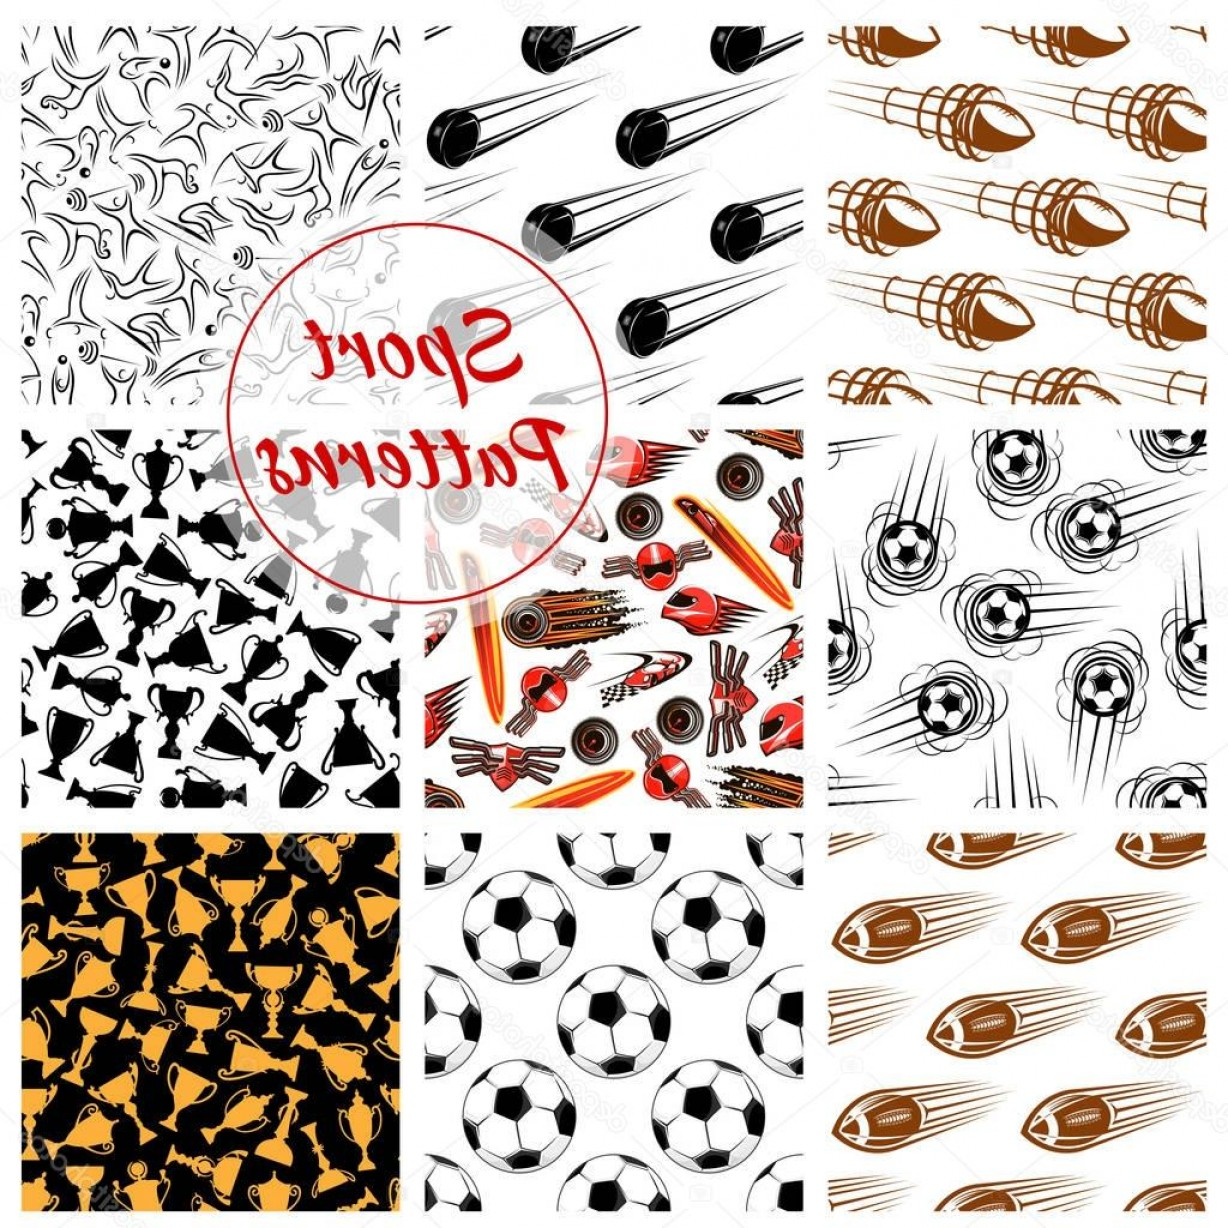 Hockey Vector Patterns: Stock Illustration Sport Balls Items Seamless Patterns